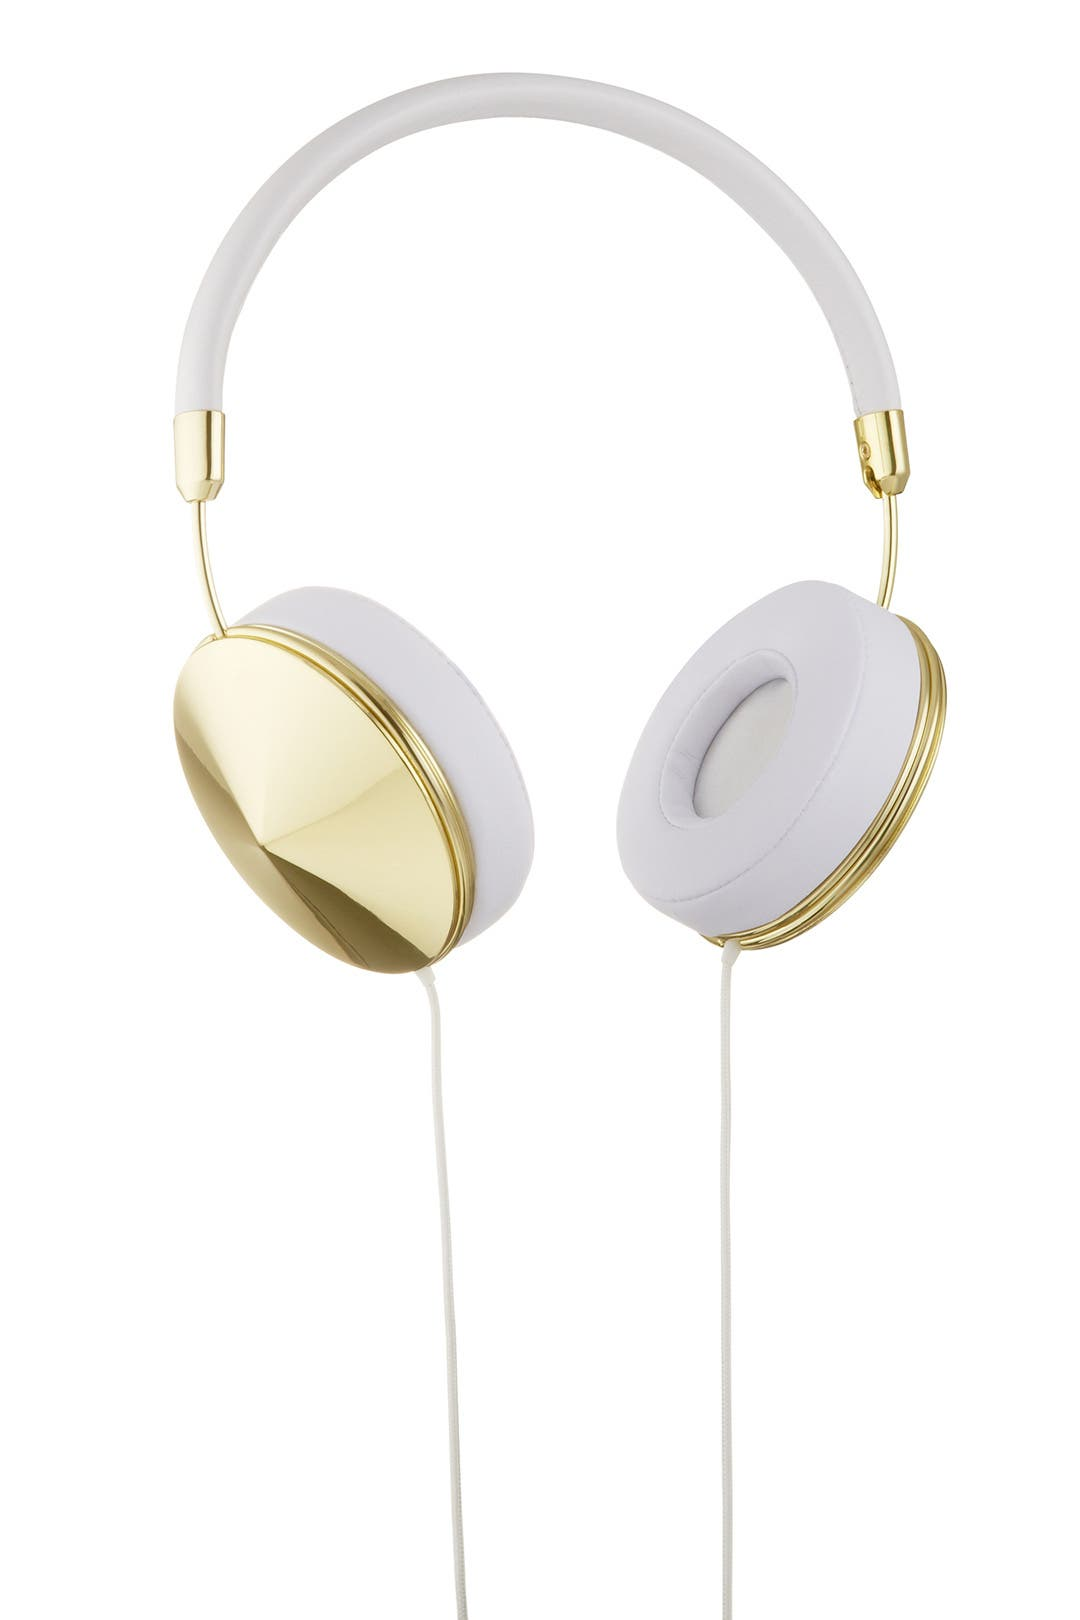 Taylor Gold Headphones by Frends